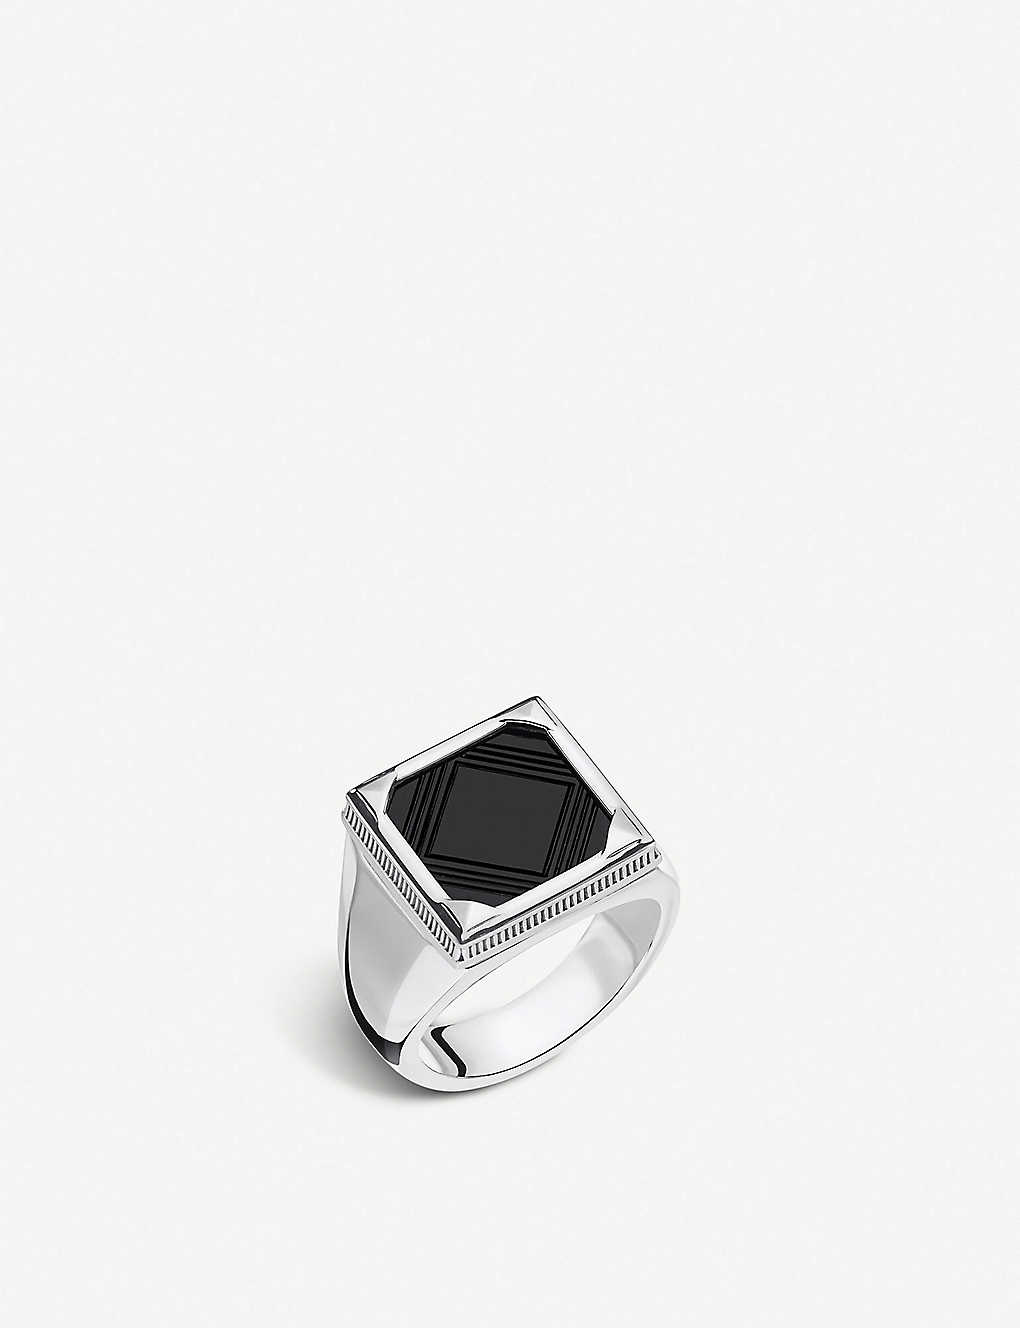 THOMAS SABO: Rebel at Heart square onyx and silver signet ring